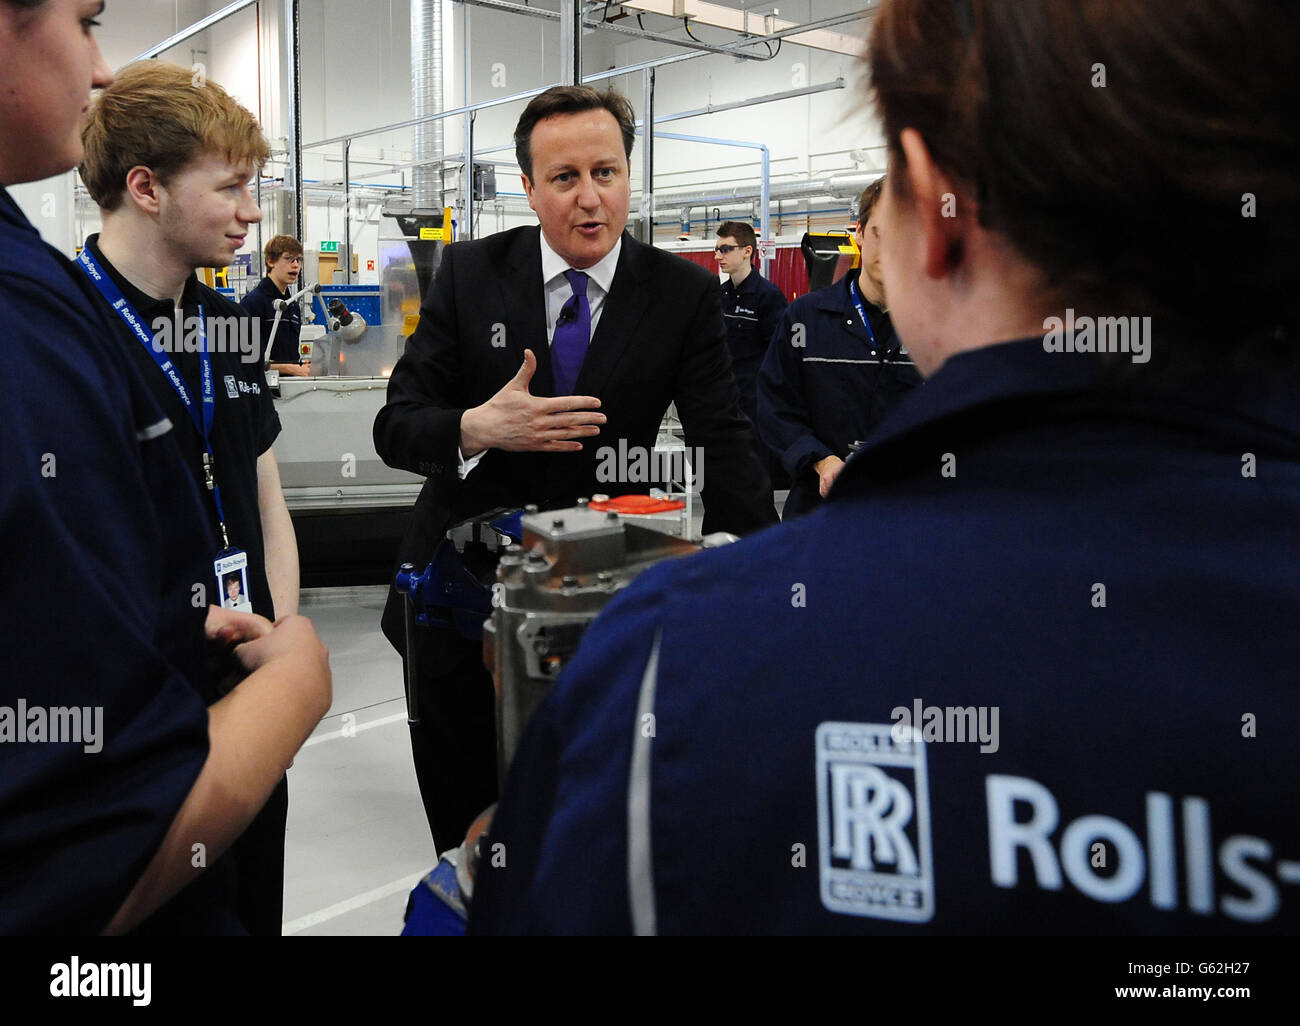 Prime Minister David Cameron meets apprentices during a visit to Rolls Royce Learning and Career Development Centre Stock Photo